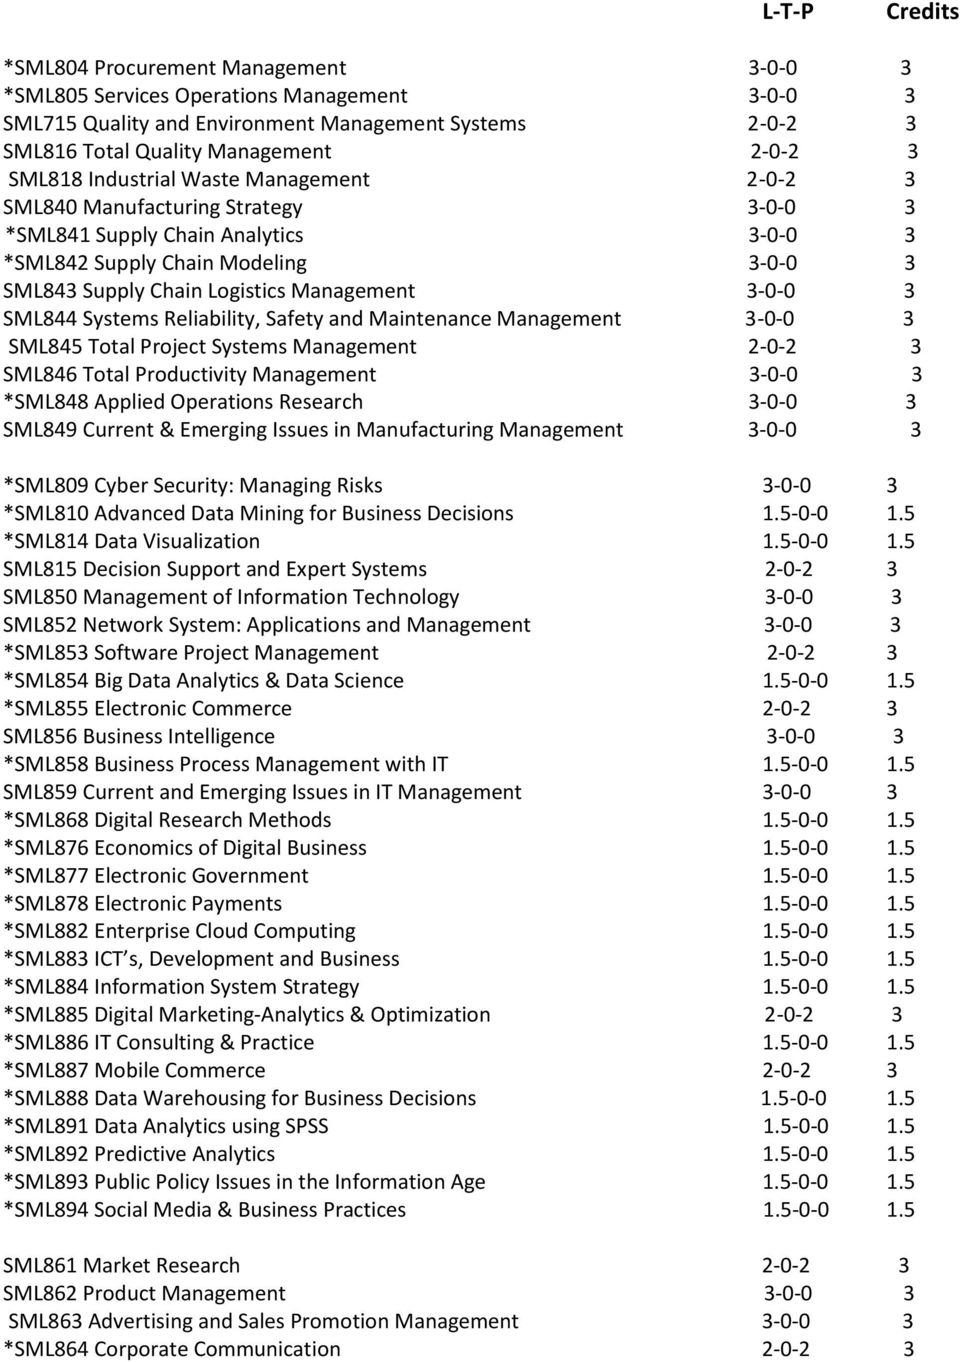 Systems t 2-0-2 SML846 Total Productivity t -0-0 *SML848 Applied Operations Research -0-0 SML849 Current & Emerging Issues in Manufacturing t -0-0 *SML809 Cyber Security: Managing Risks -0-0 *SML810